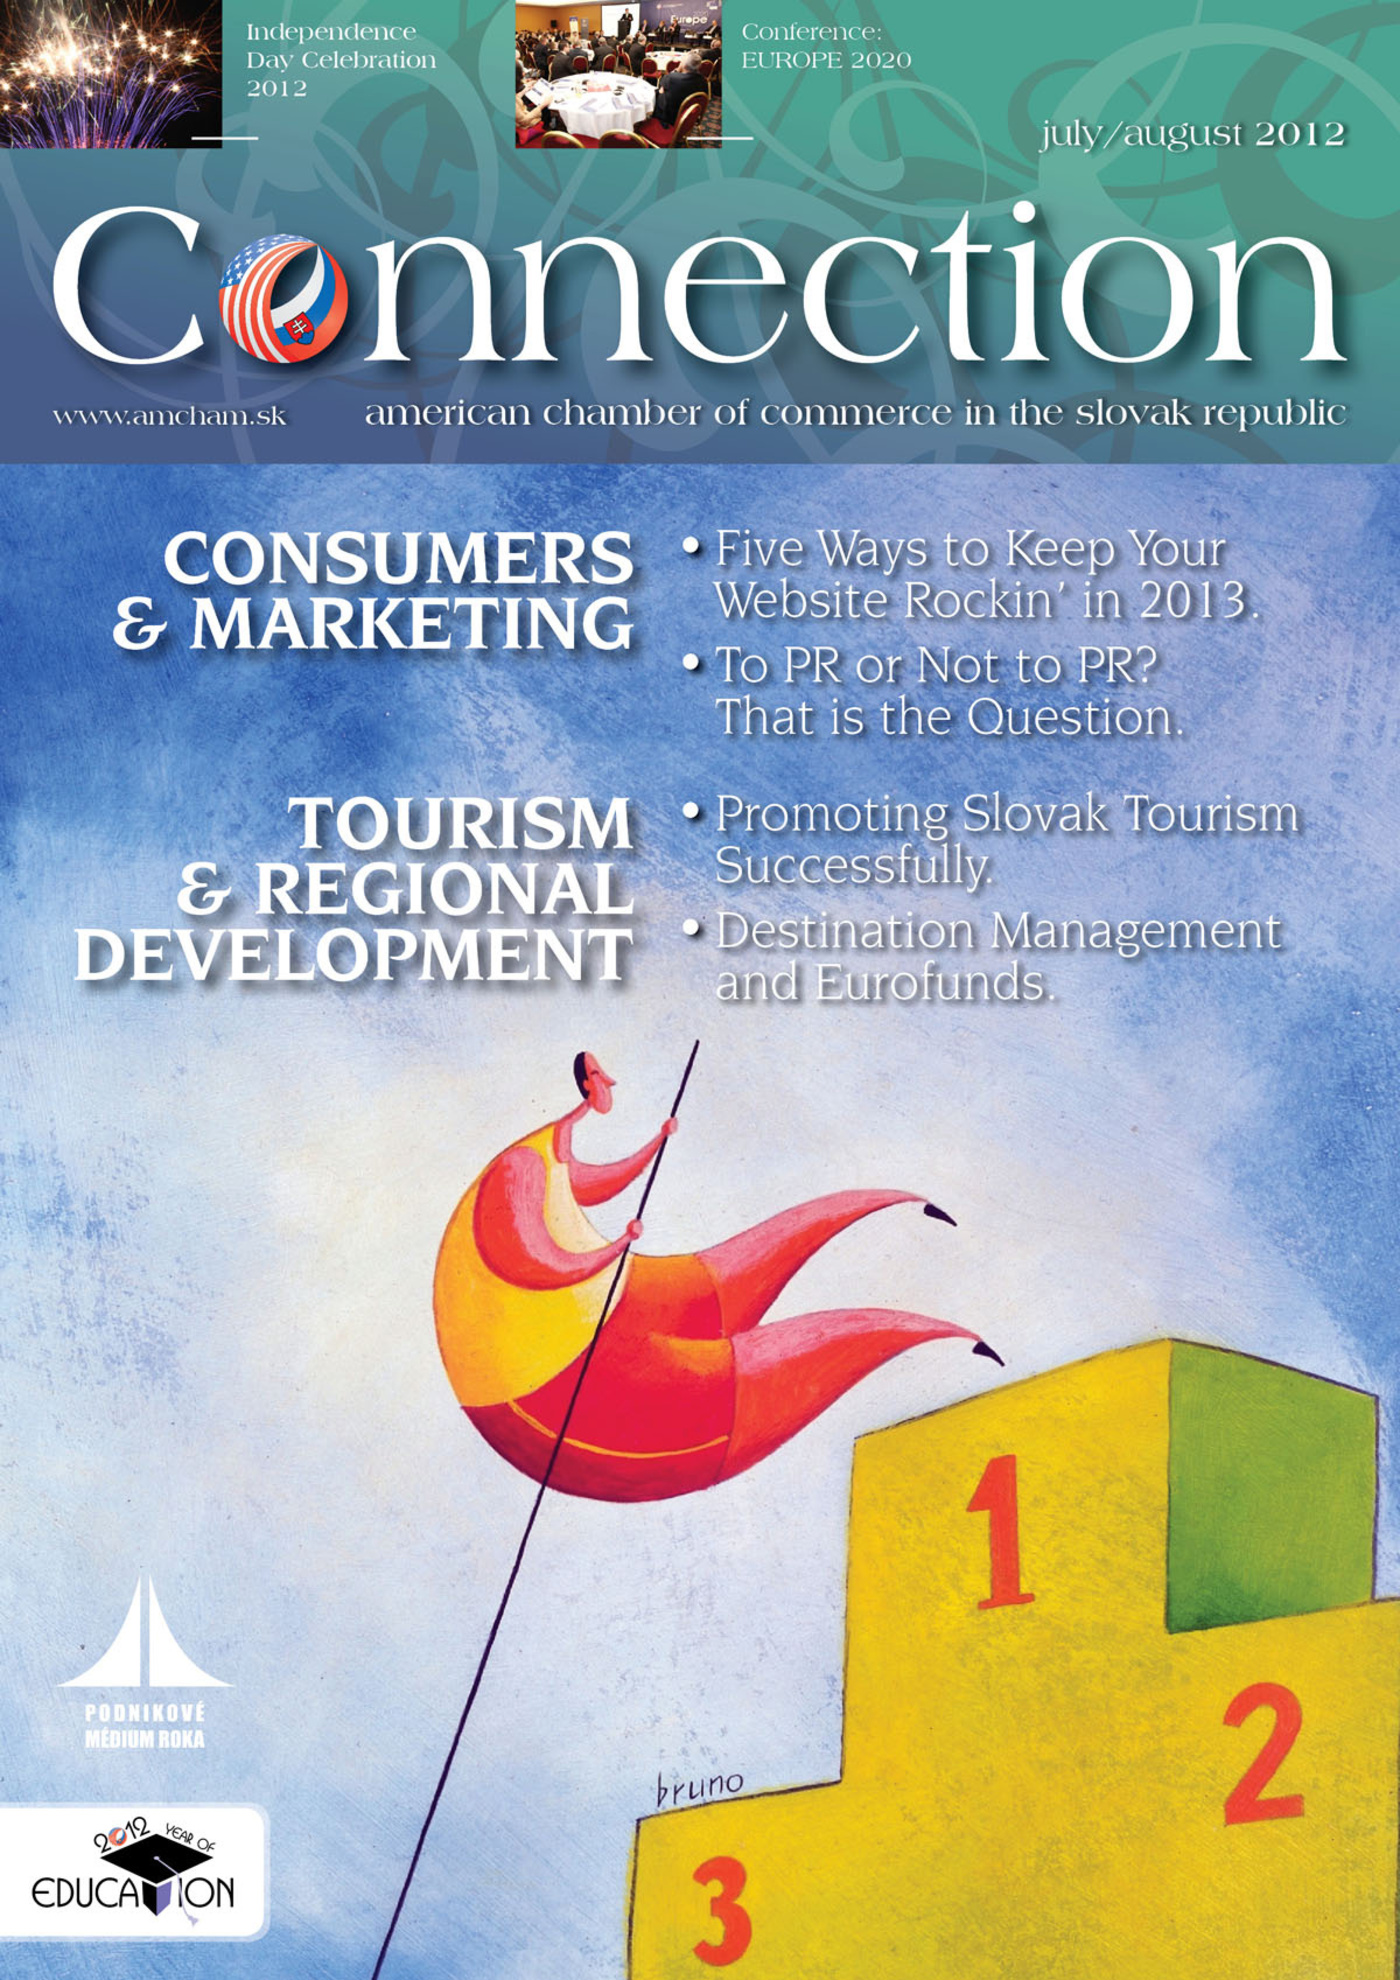 2012-07 / Tourism & Regional Development, Consumers & Marketing